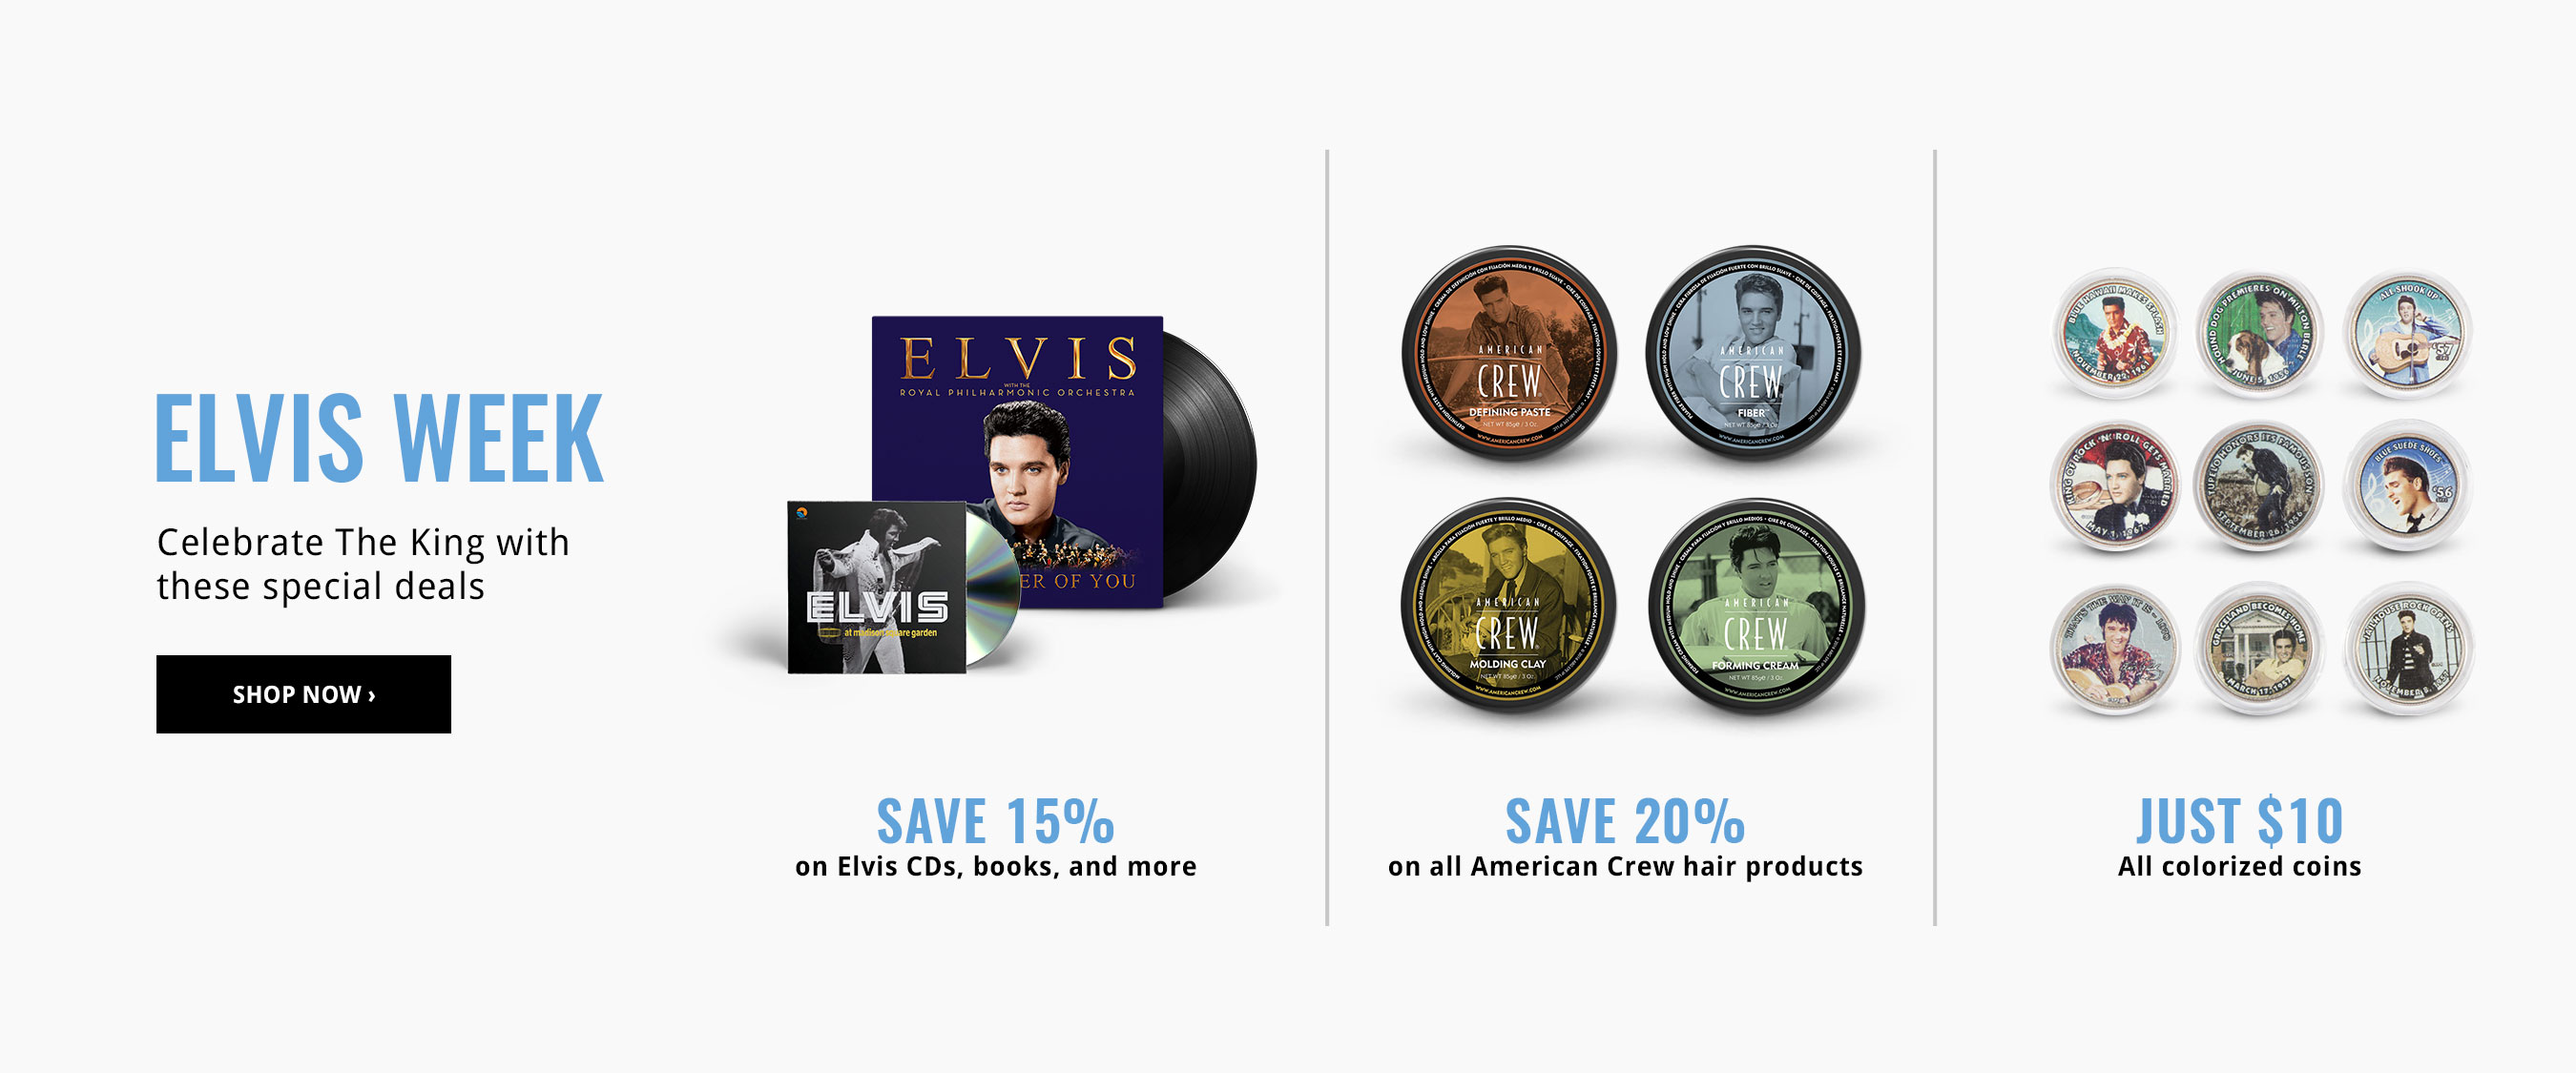 15% Off Media for Elvis Week